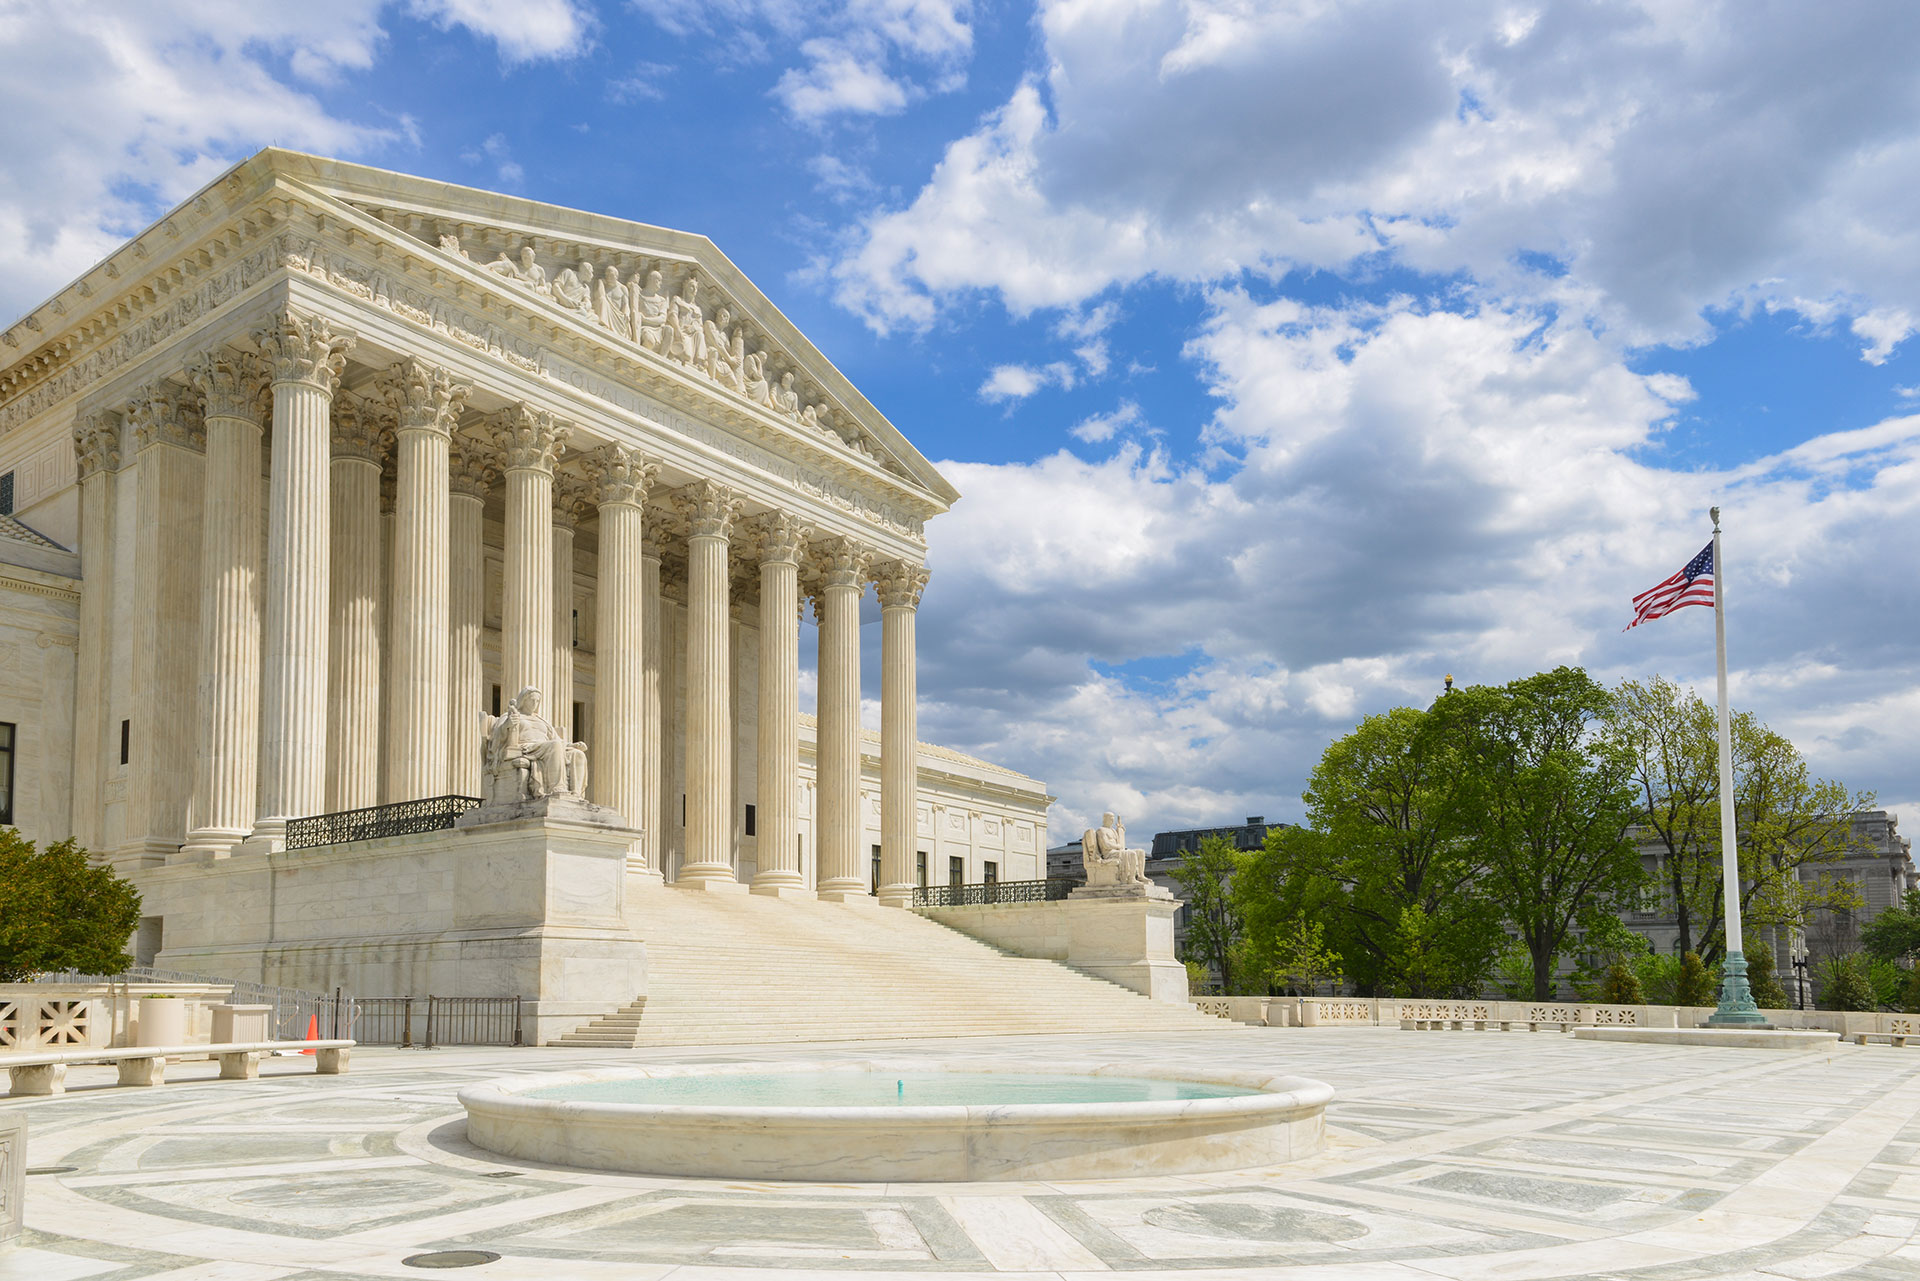 United States Supreme Court Building in Washington D.C.